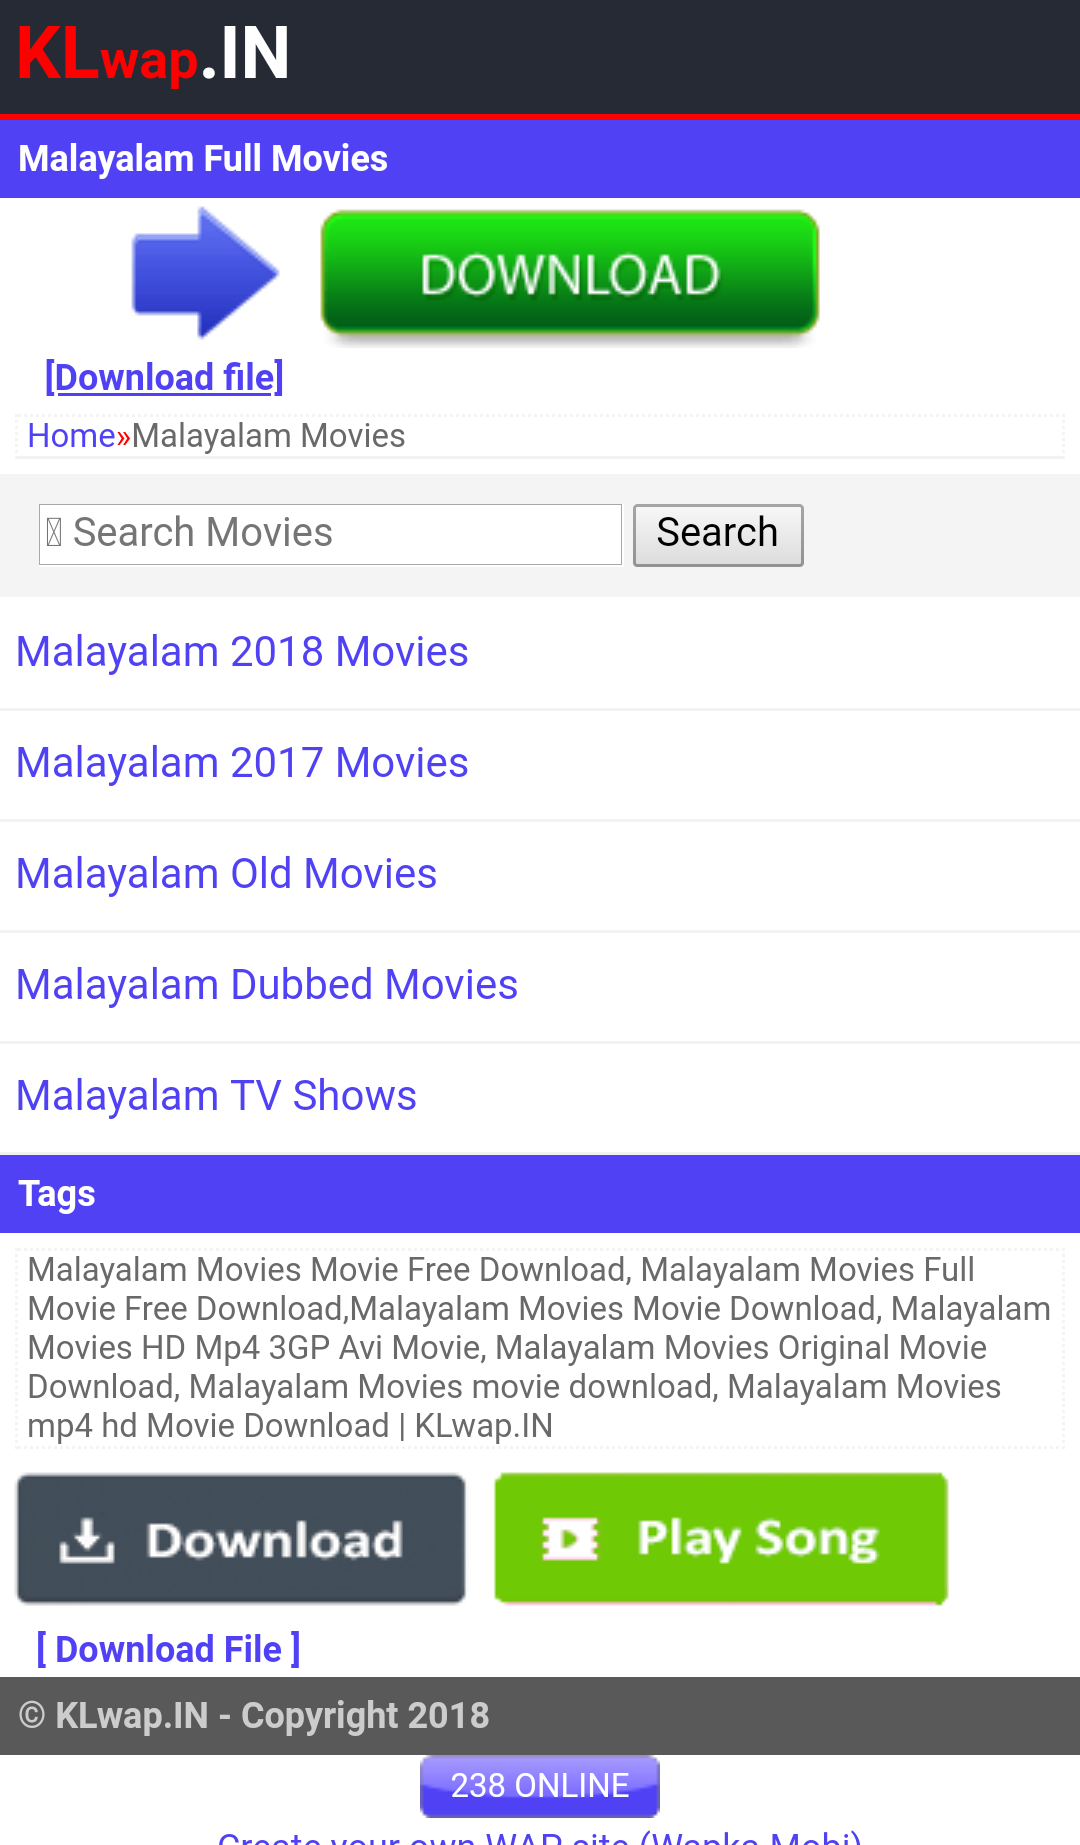 klwap in malayalam movie download site